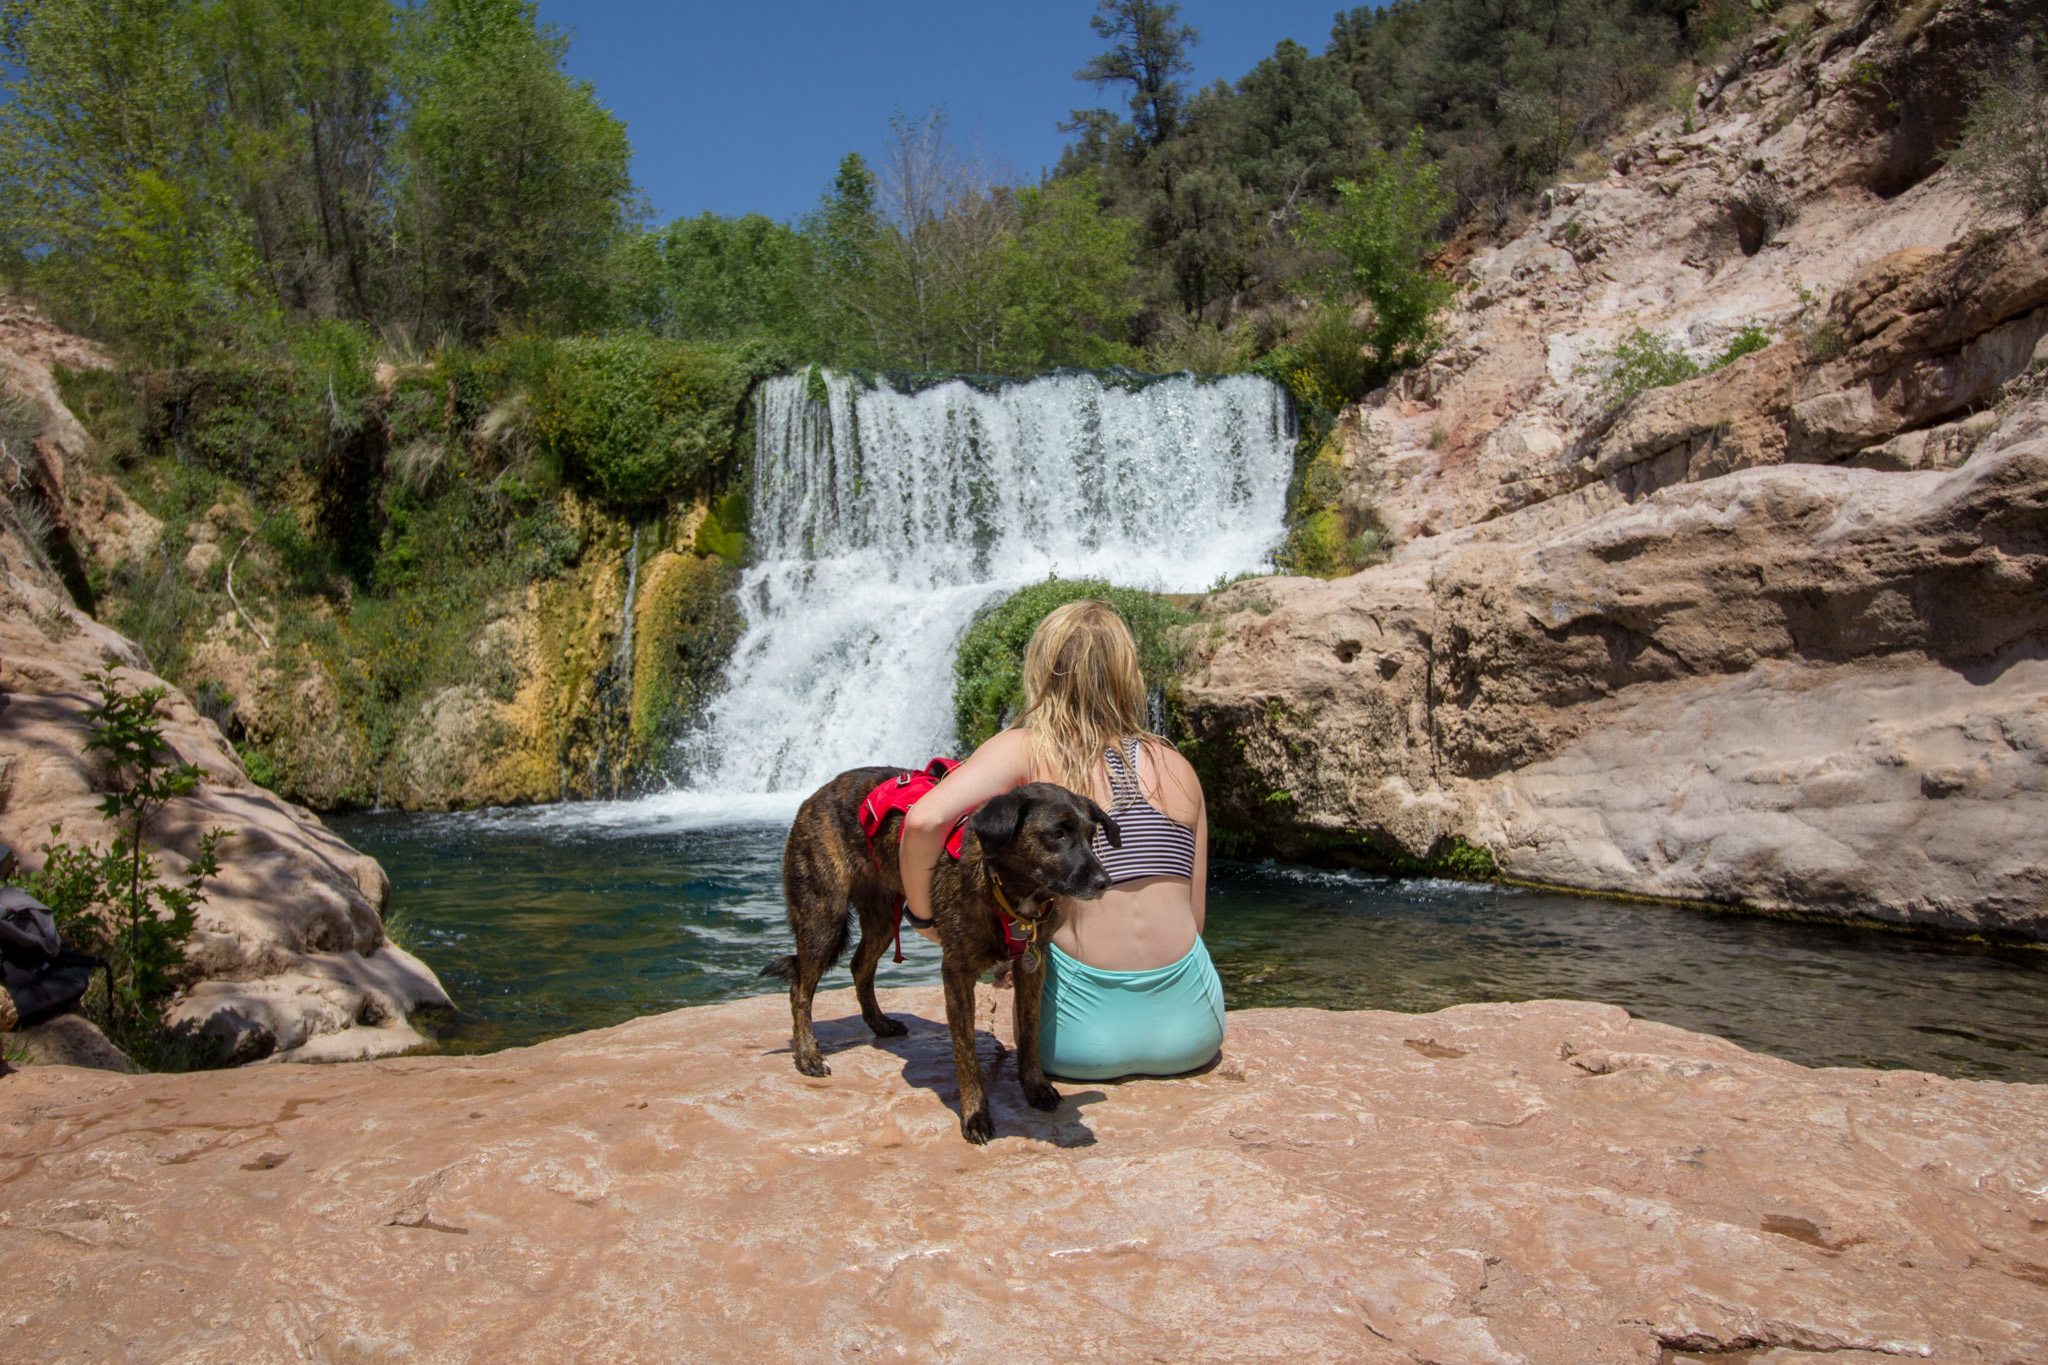 fossilcreek-160 - Erin & Rory.jpg